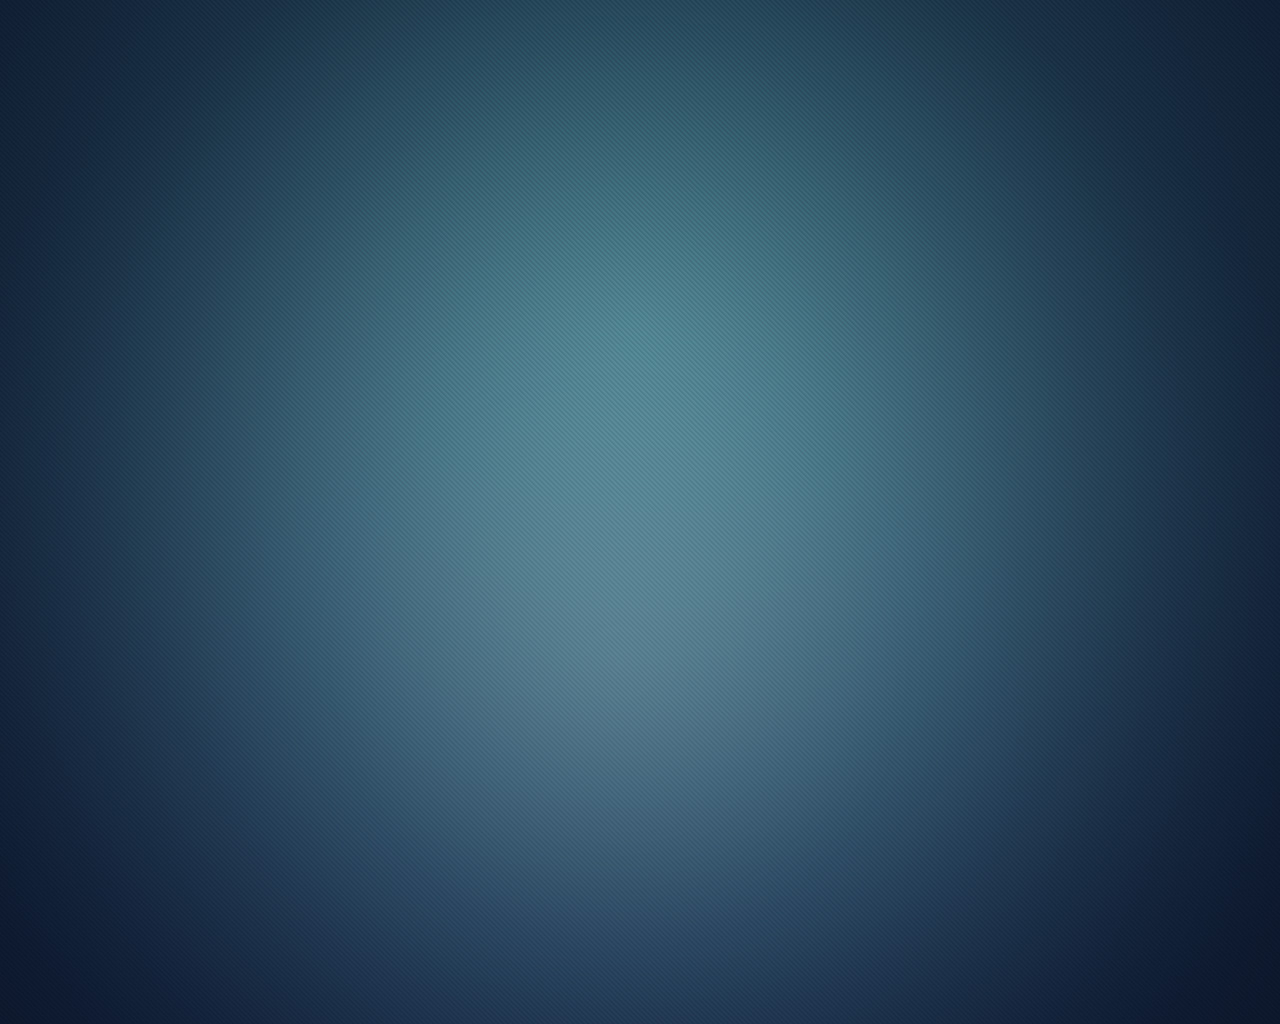 Blue Backgrounds for Photoshop 1280x1024